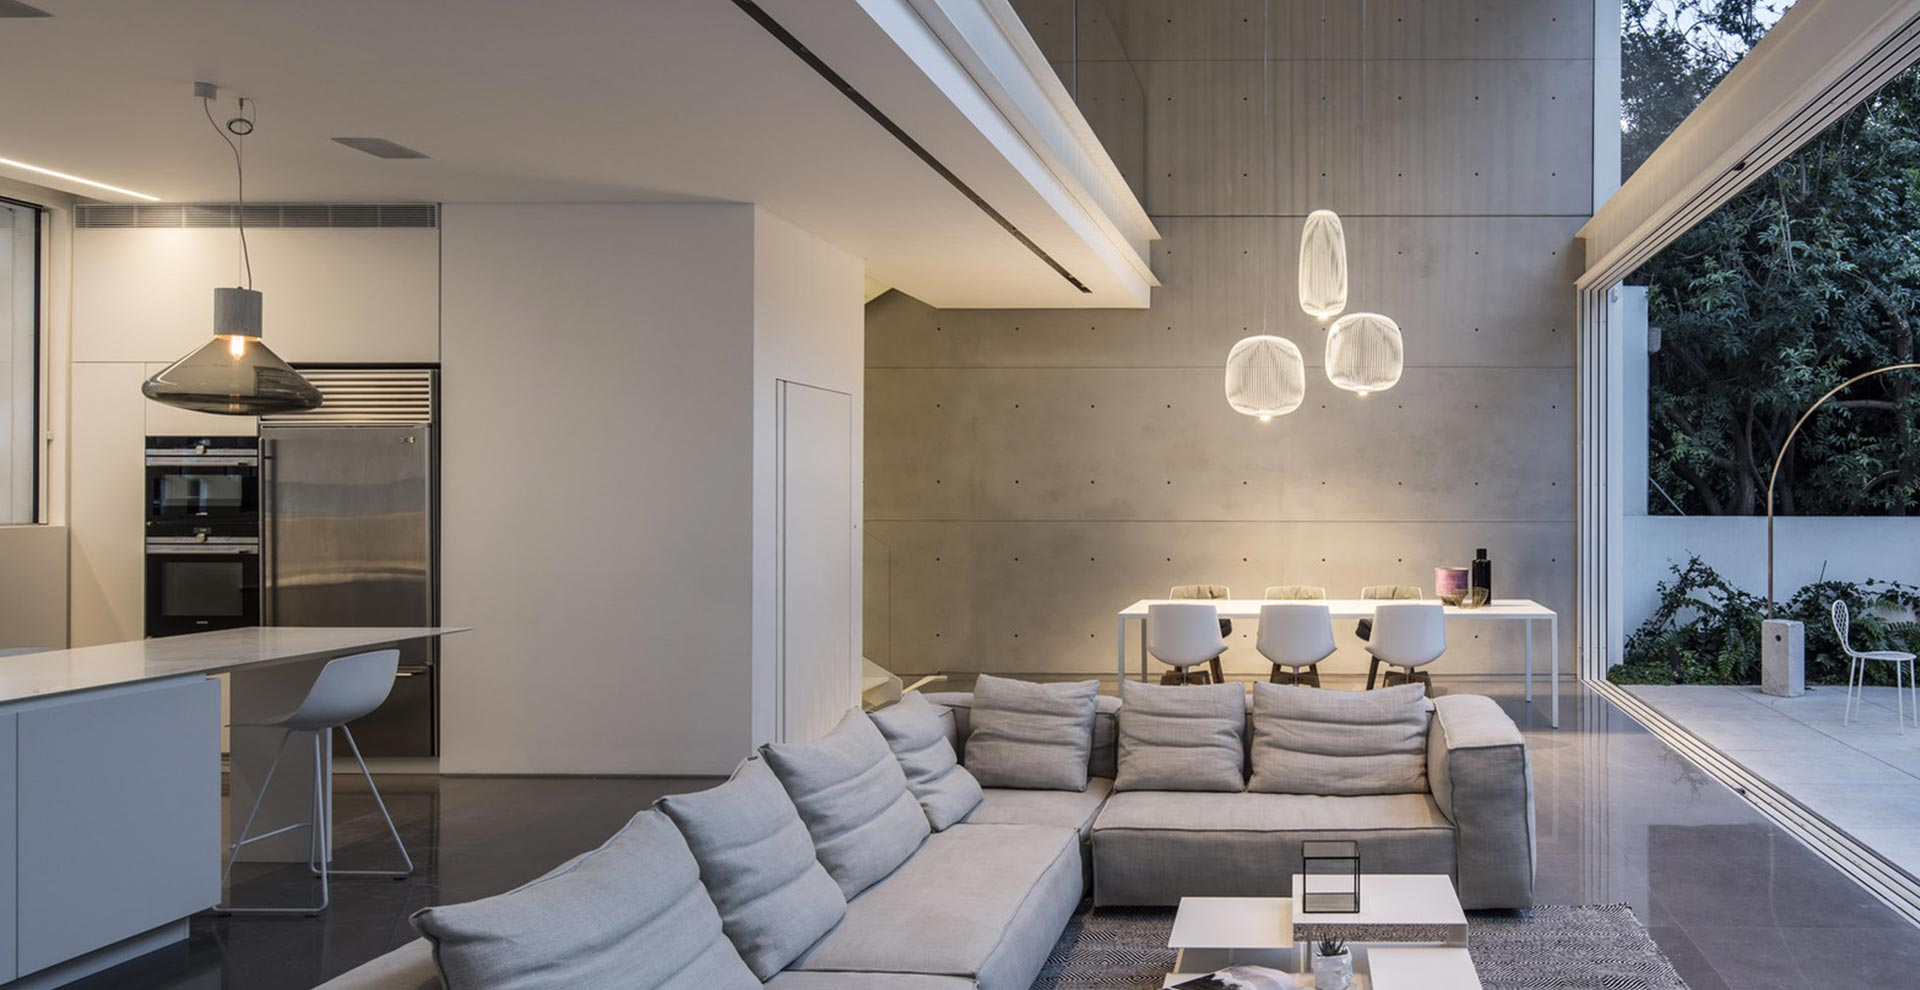 Spokes Foscarini